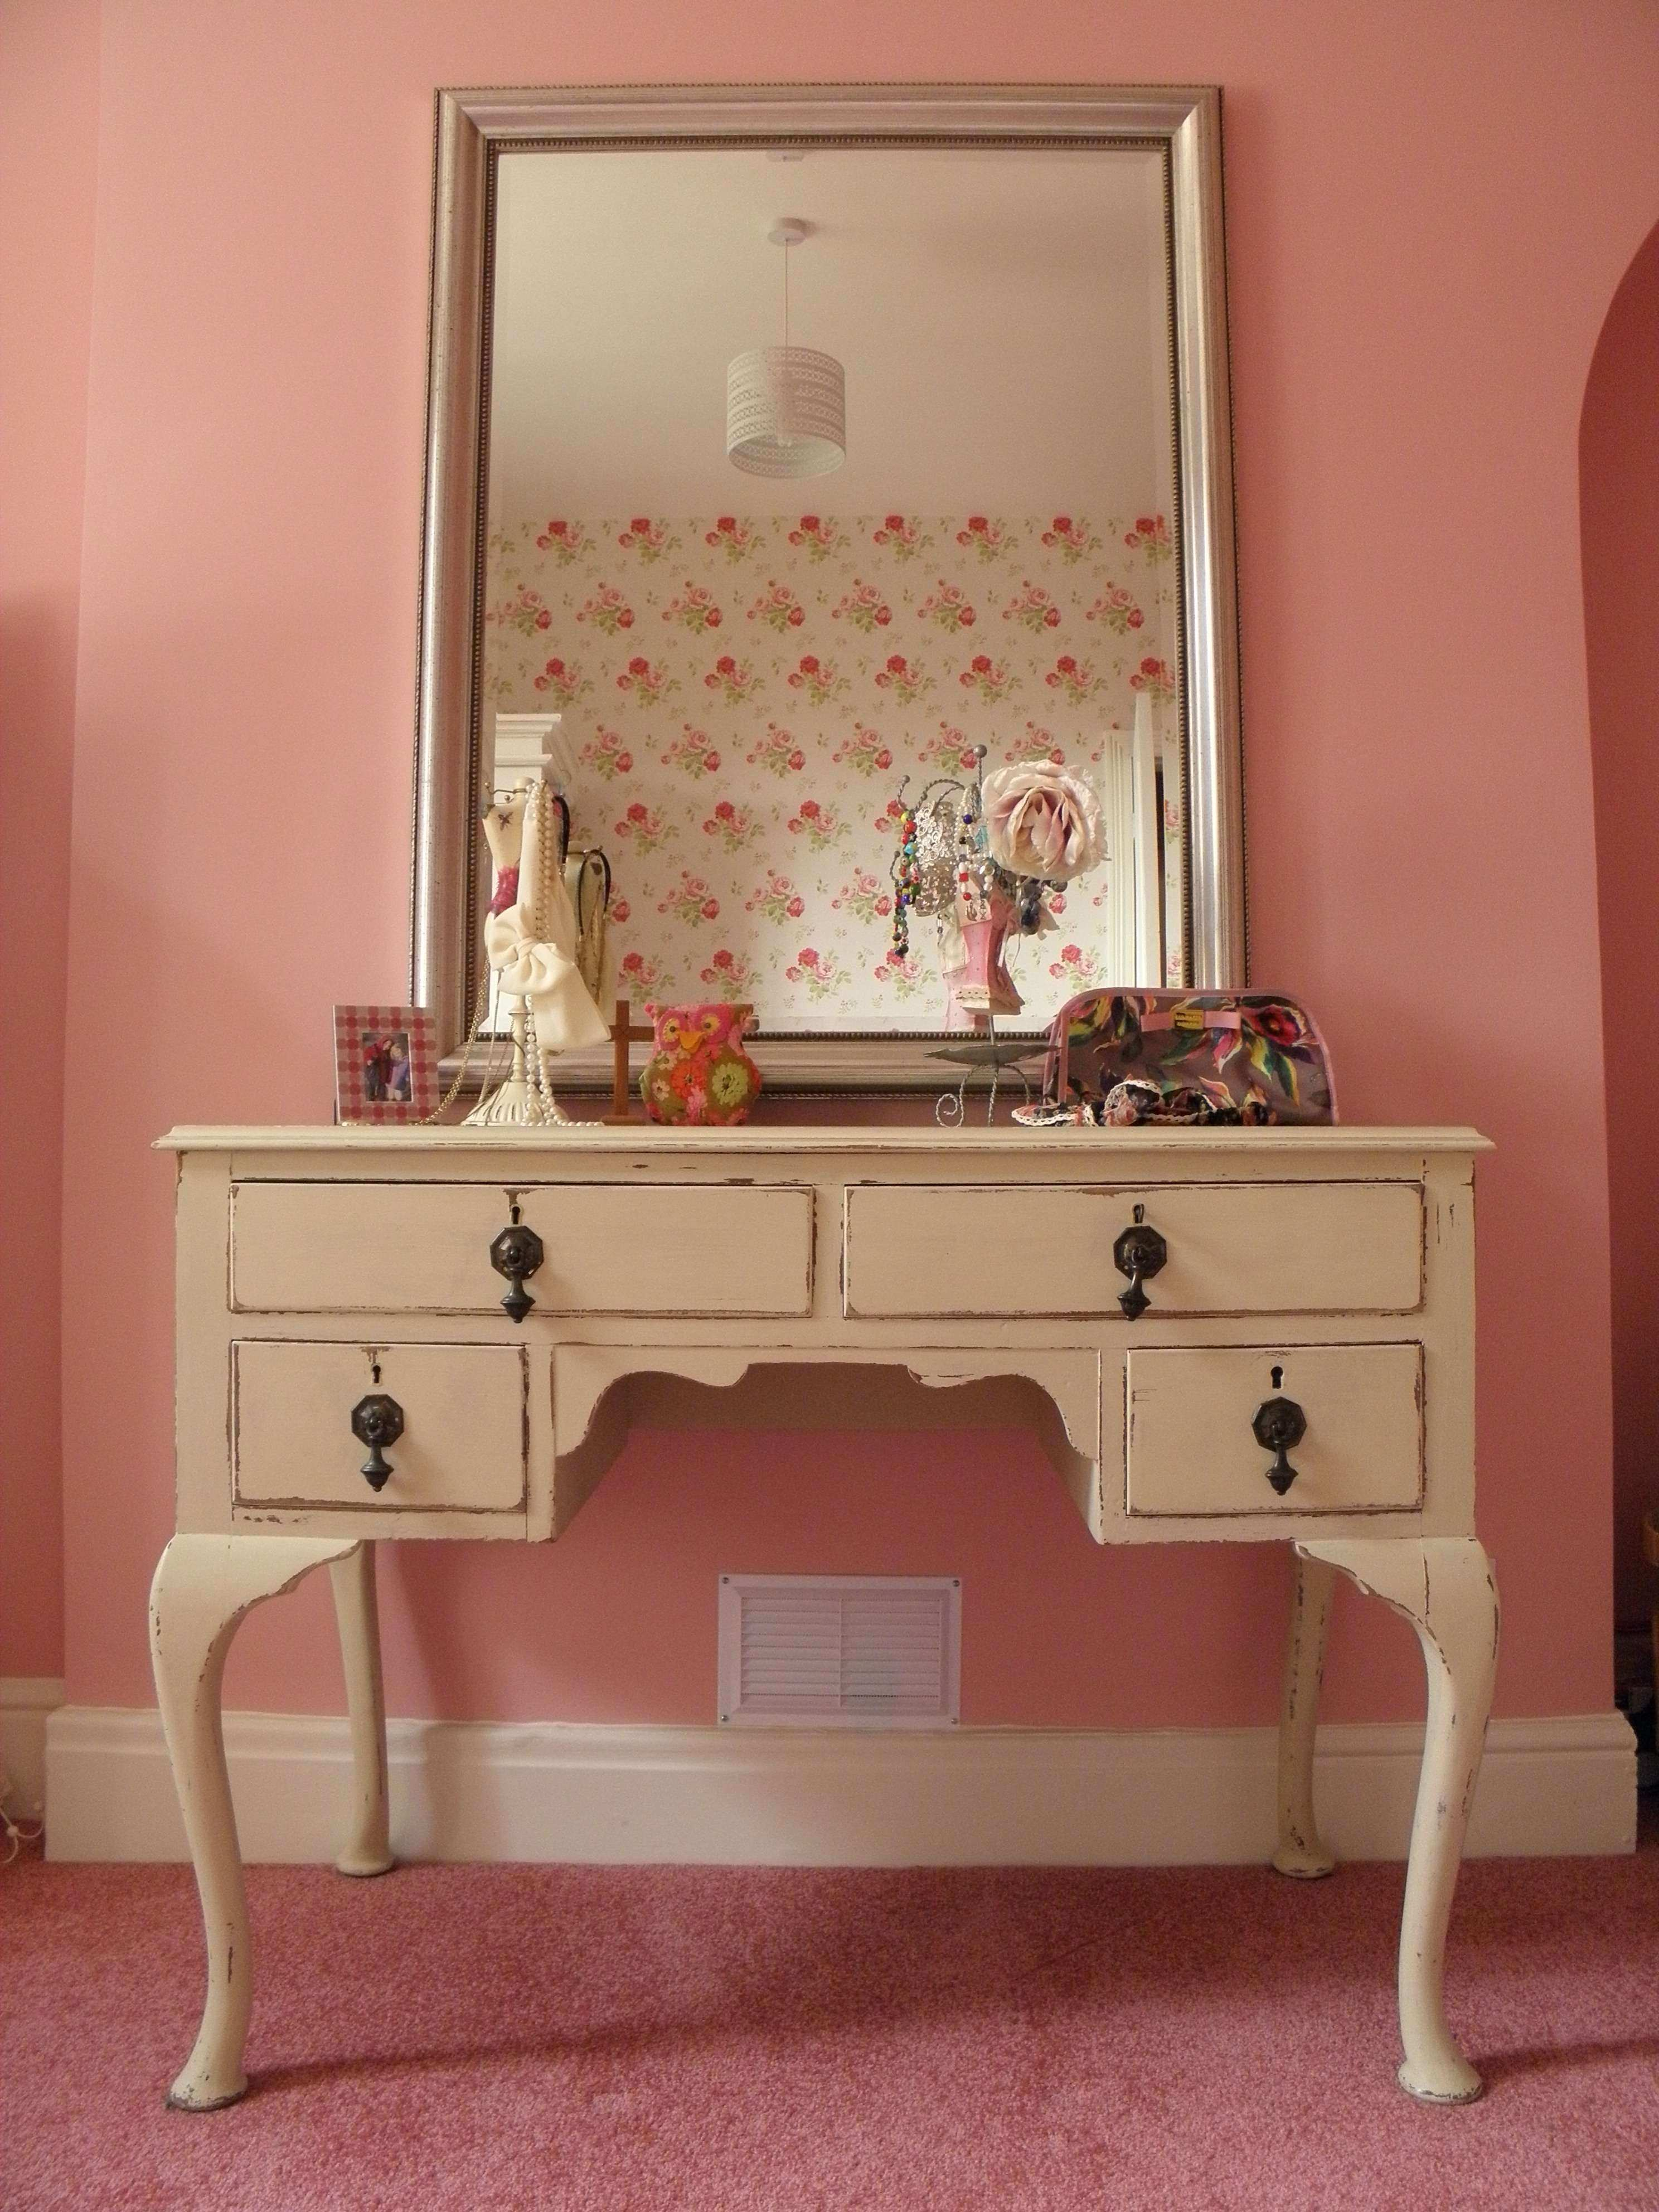 Bedroom Mirror Ideas Unique Beige Wooden Dressing Table with Legs